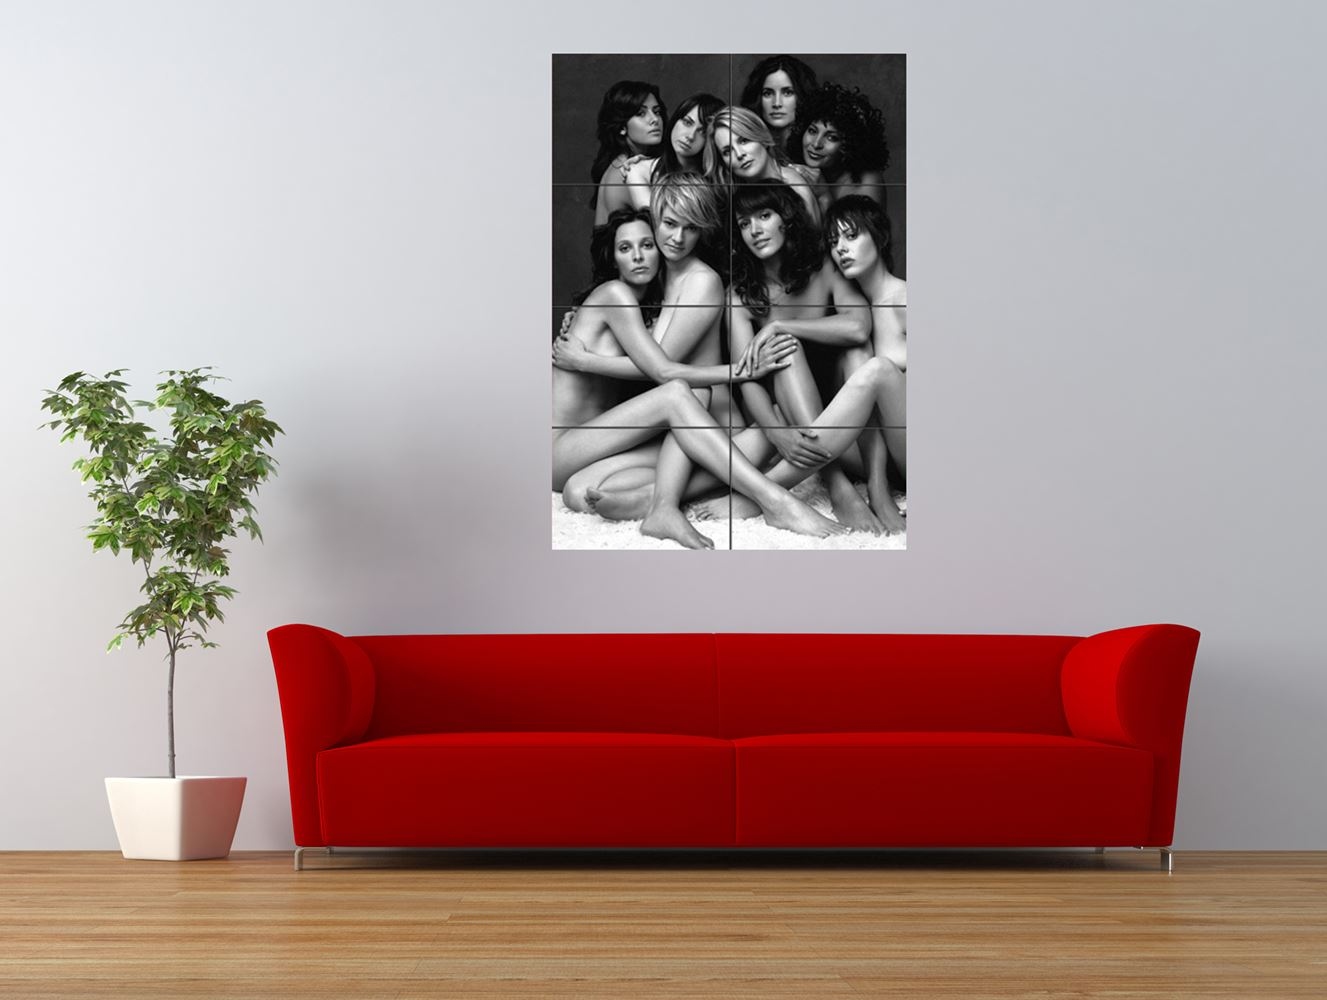 the l word lesbian television show cast giant art print panel poster nor0003 ebay. Black Bedroom Furniture Sets. Home Design Ideas